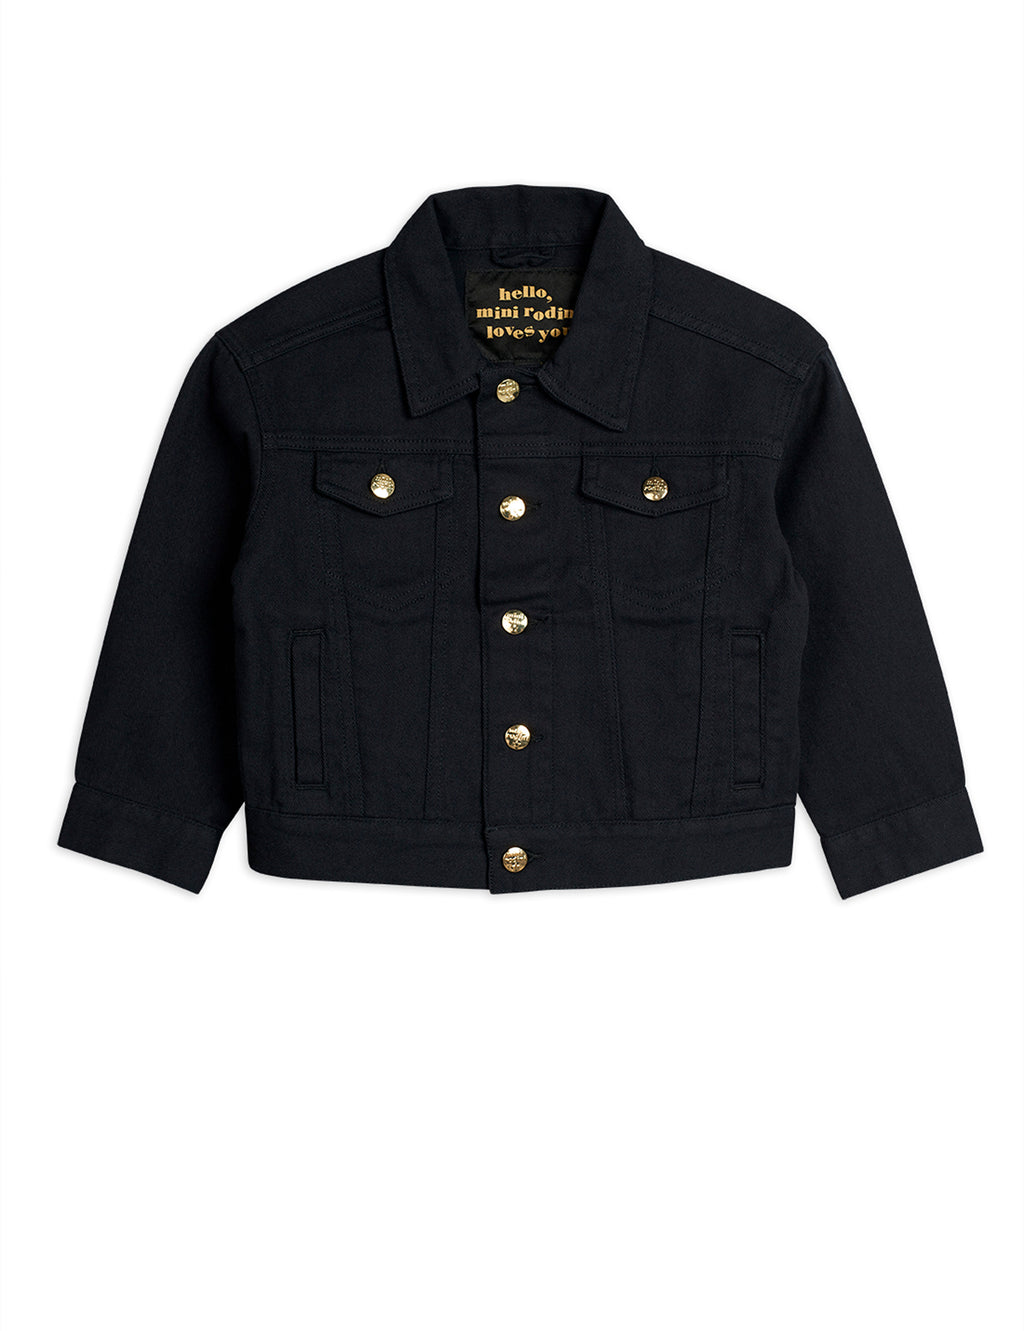 Mini Rodini black denim jacket with with two front flap pockets at the chest, two single welt pockets on the side.